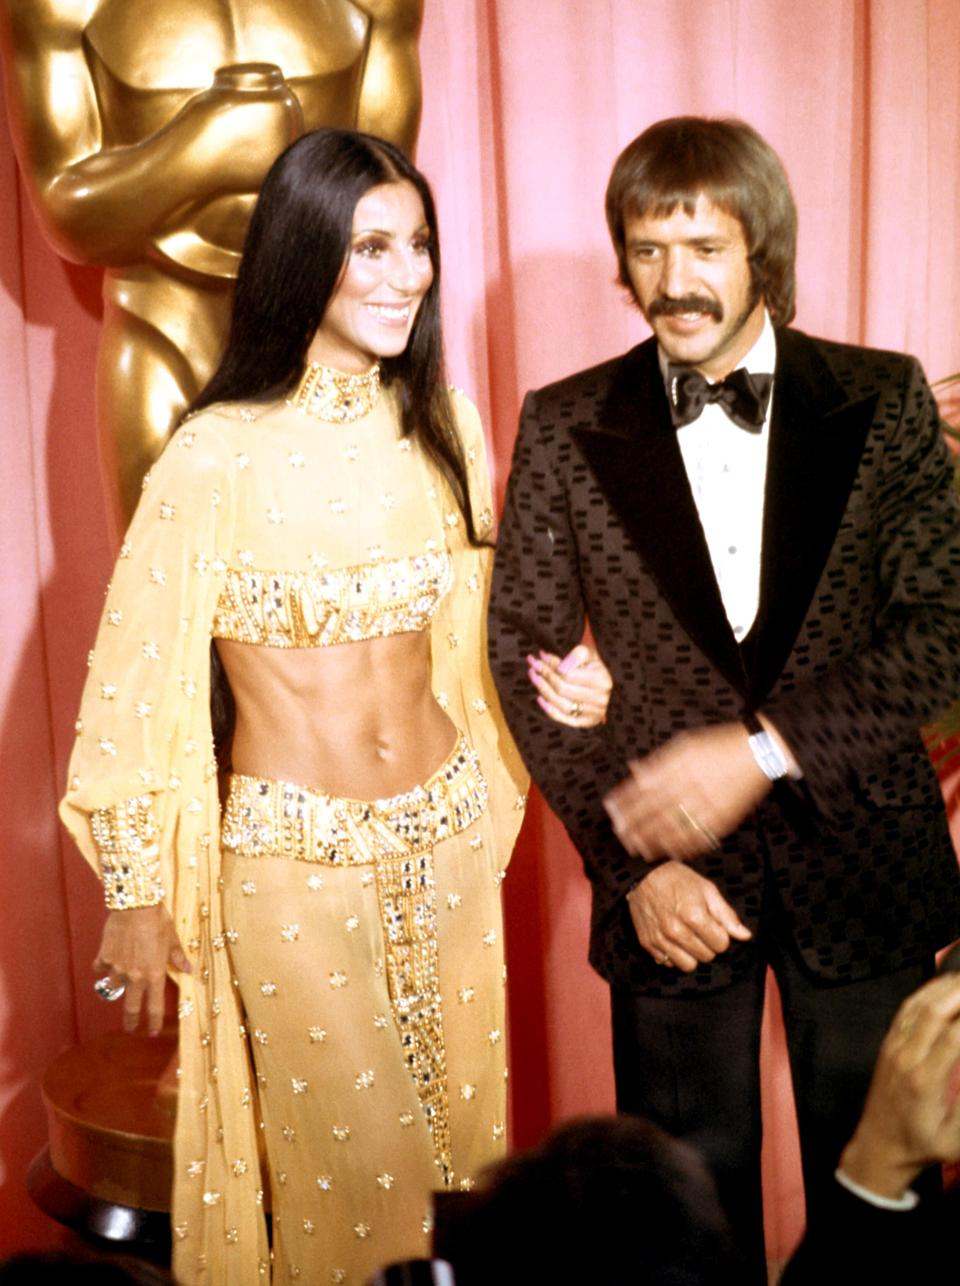 The singer flouted convention at the 1973 Oscars in a dazzling two-piece. Instead of a dress, she arrived wearing a midriff bearing ensemble that perfectly reflected the singer's trailblazing style.